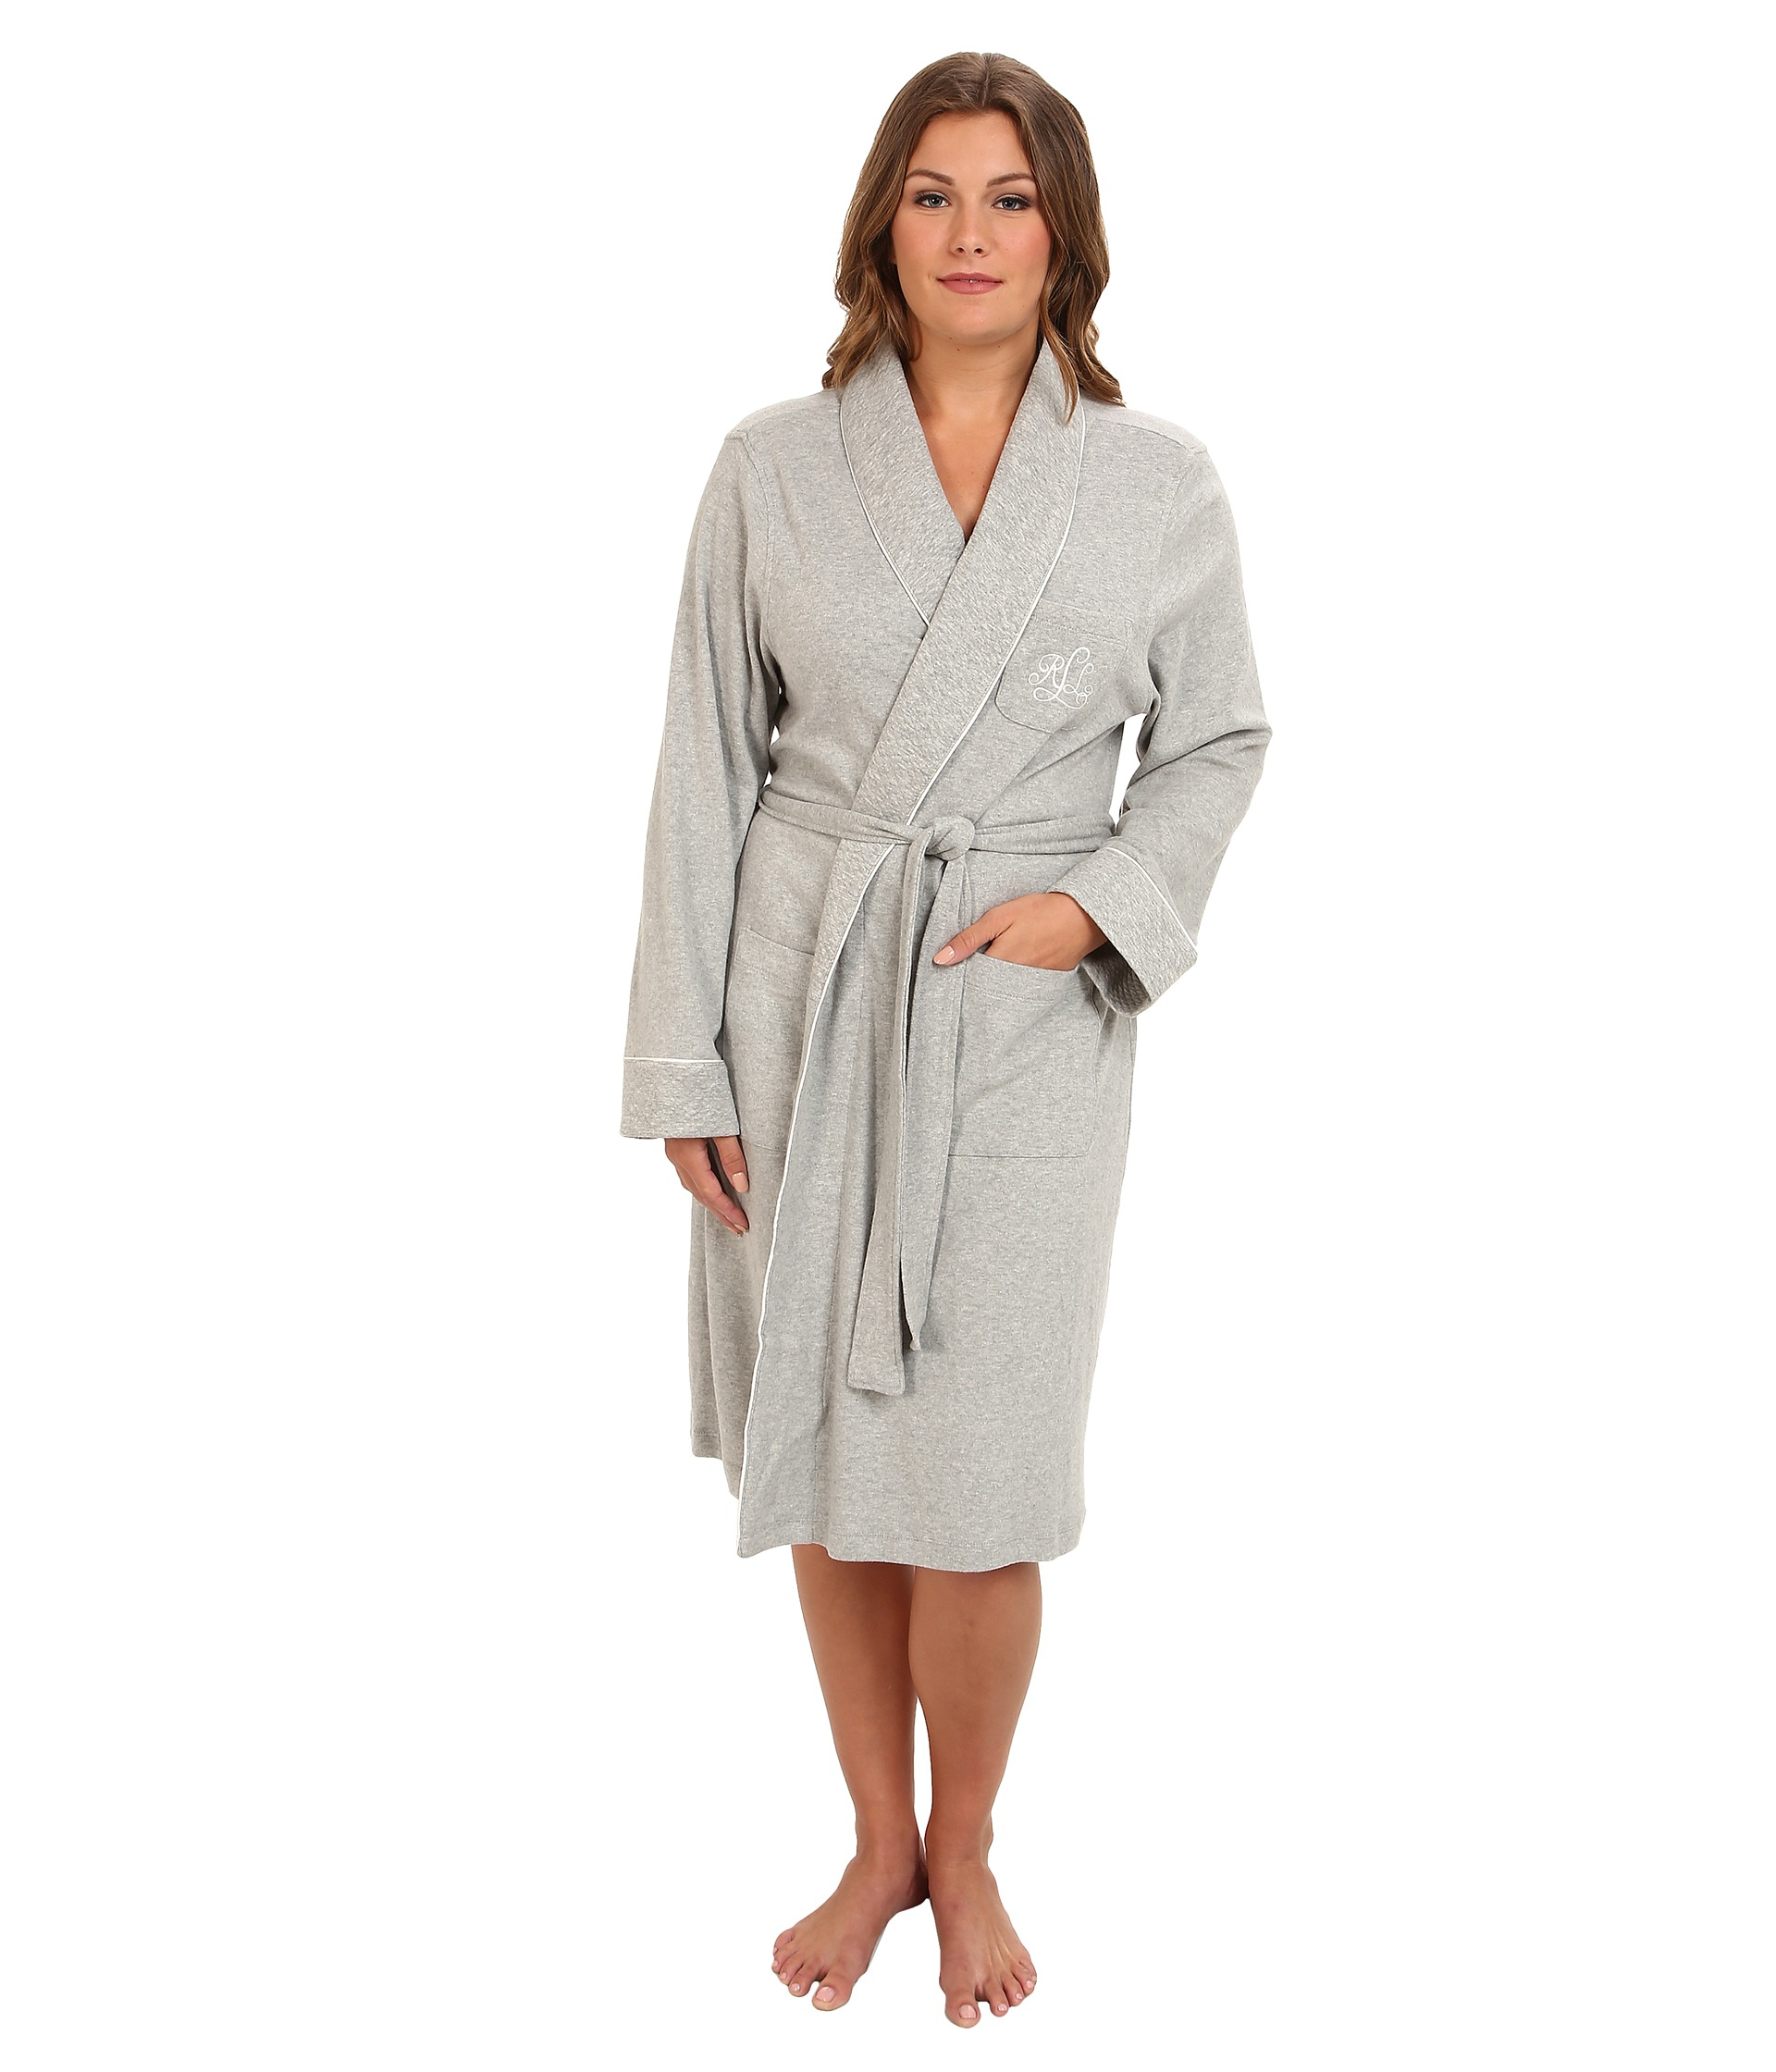 lauren by ralph lauren plus size essentials quilted collar and cuff robe in gray heather grey. Black Bedroom Furniture Sets. Home Design Ideas